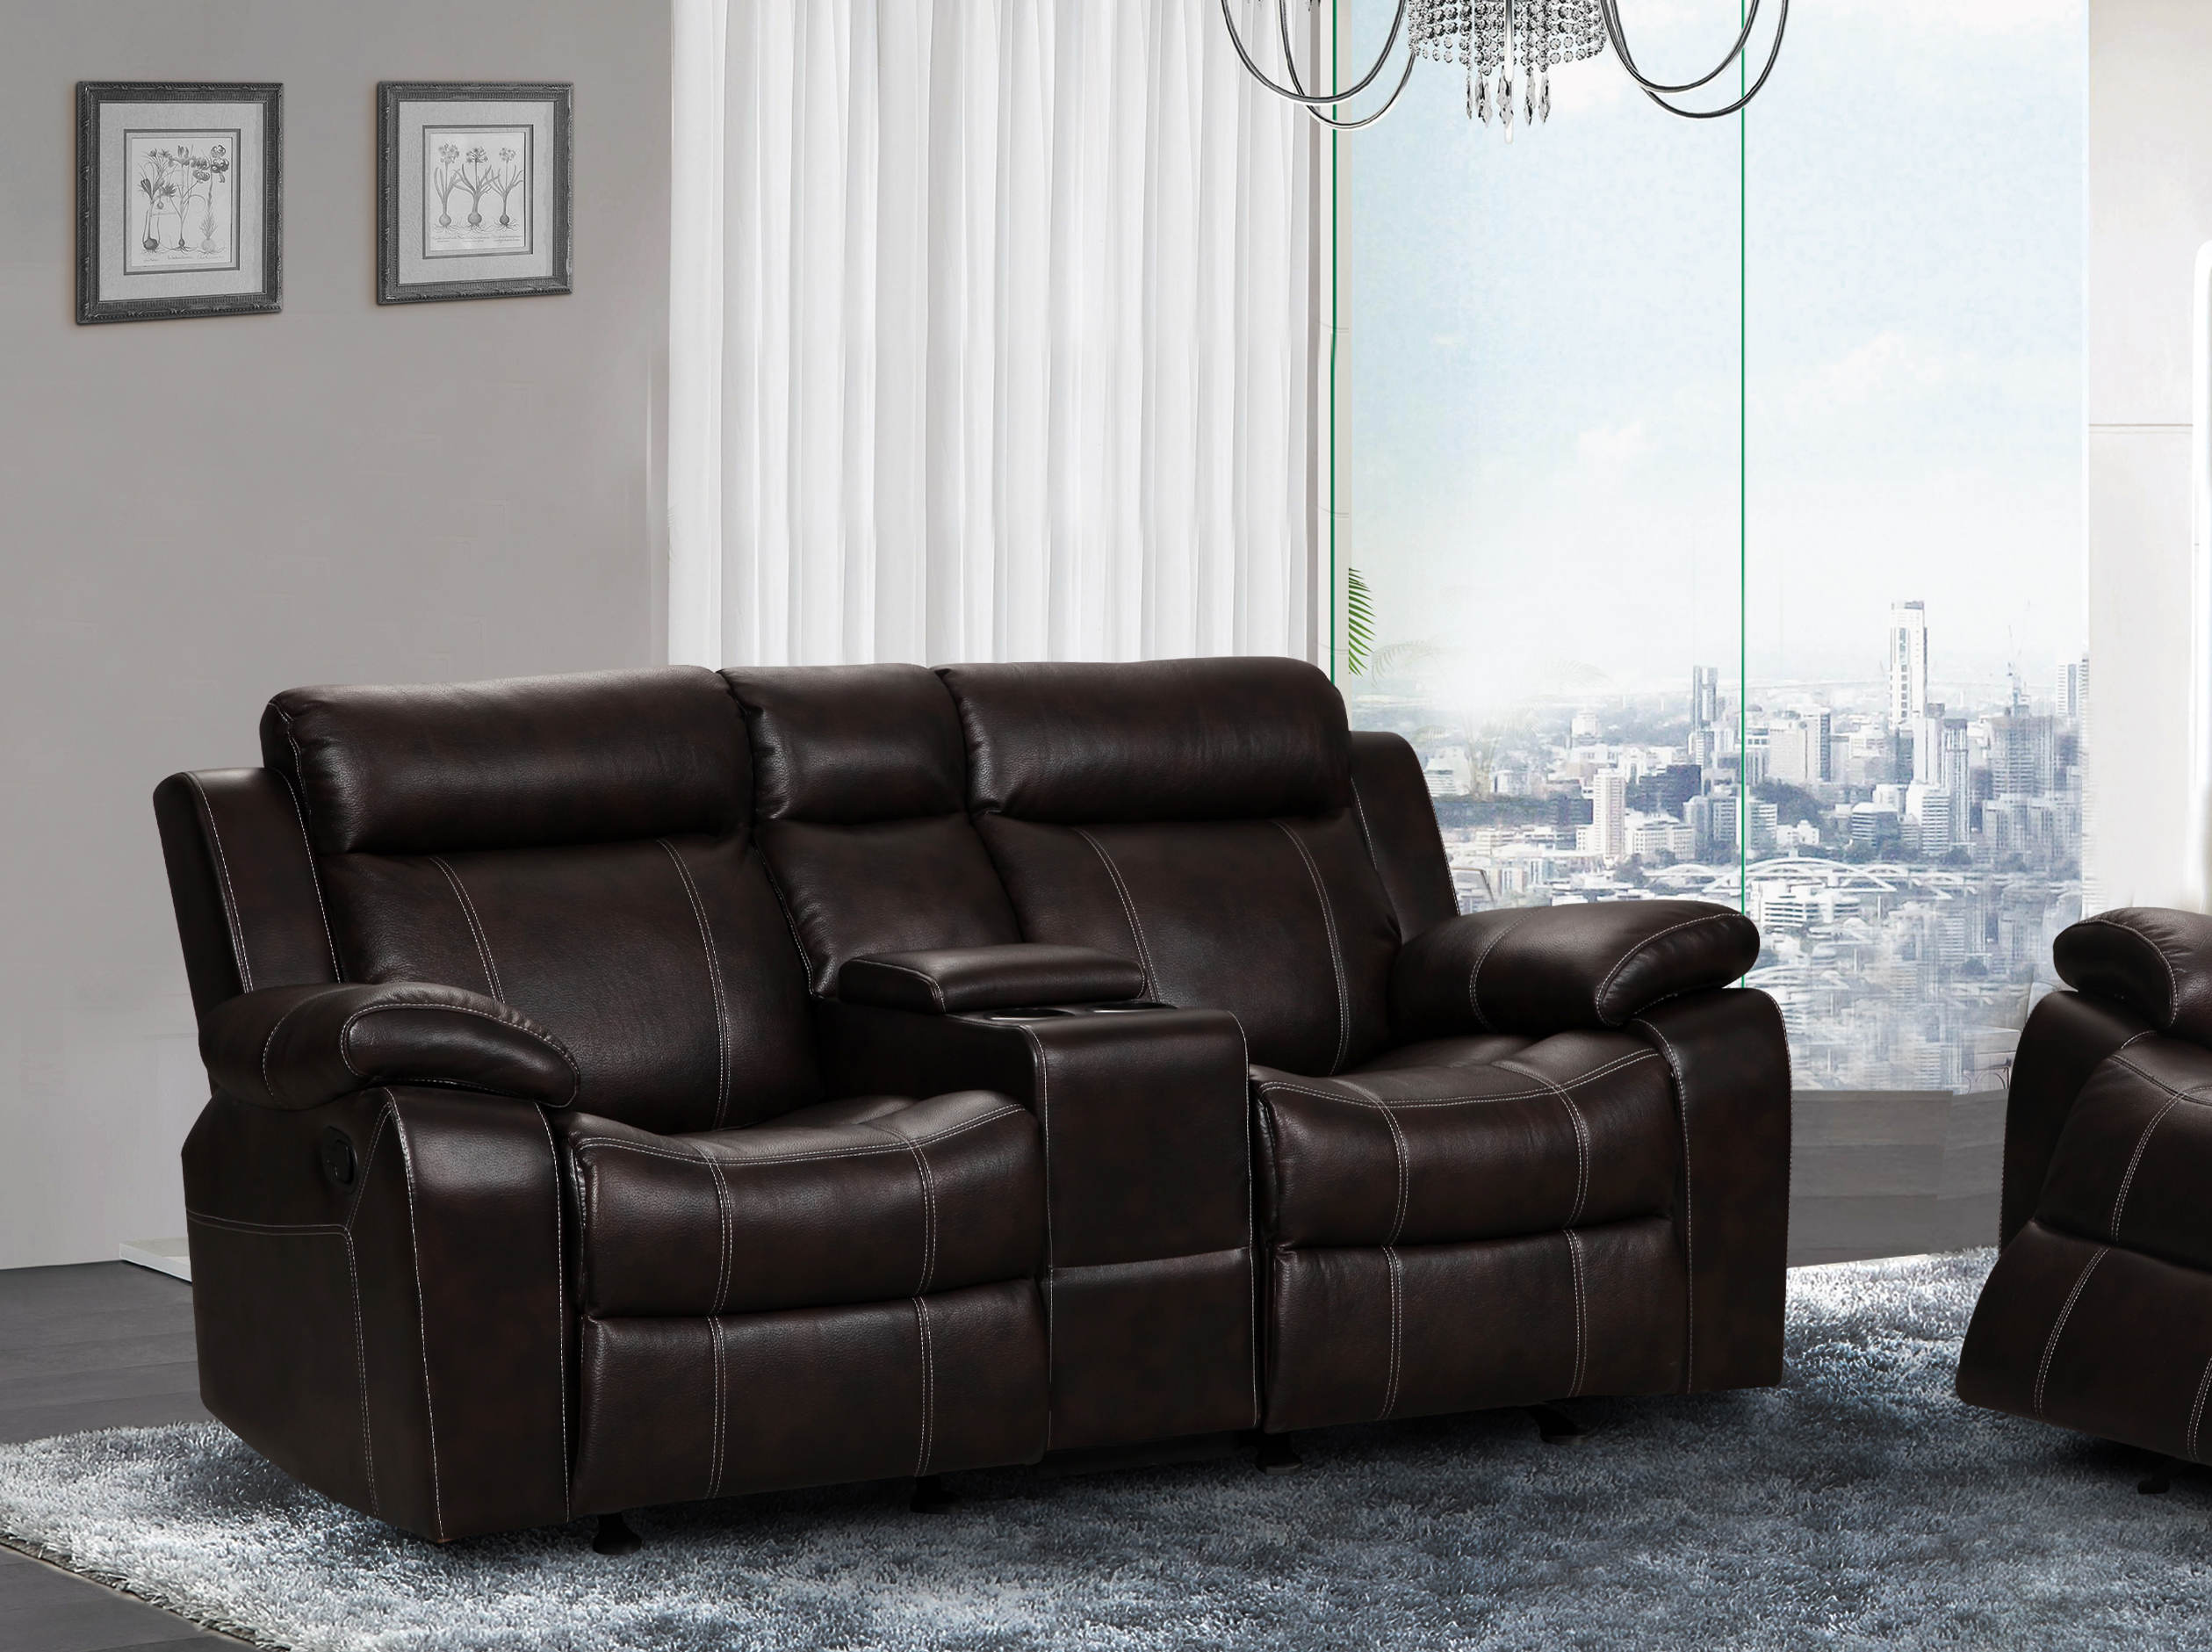 UFE Vivienne Leather Air Rocking Reclining Loveseat with Console Brown & Loveseats - Walmart.com islam-shia.org